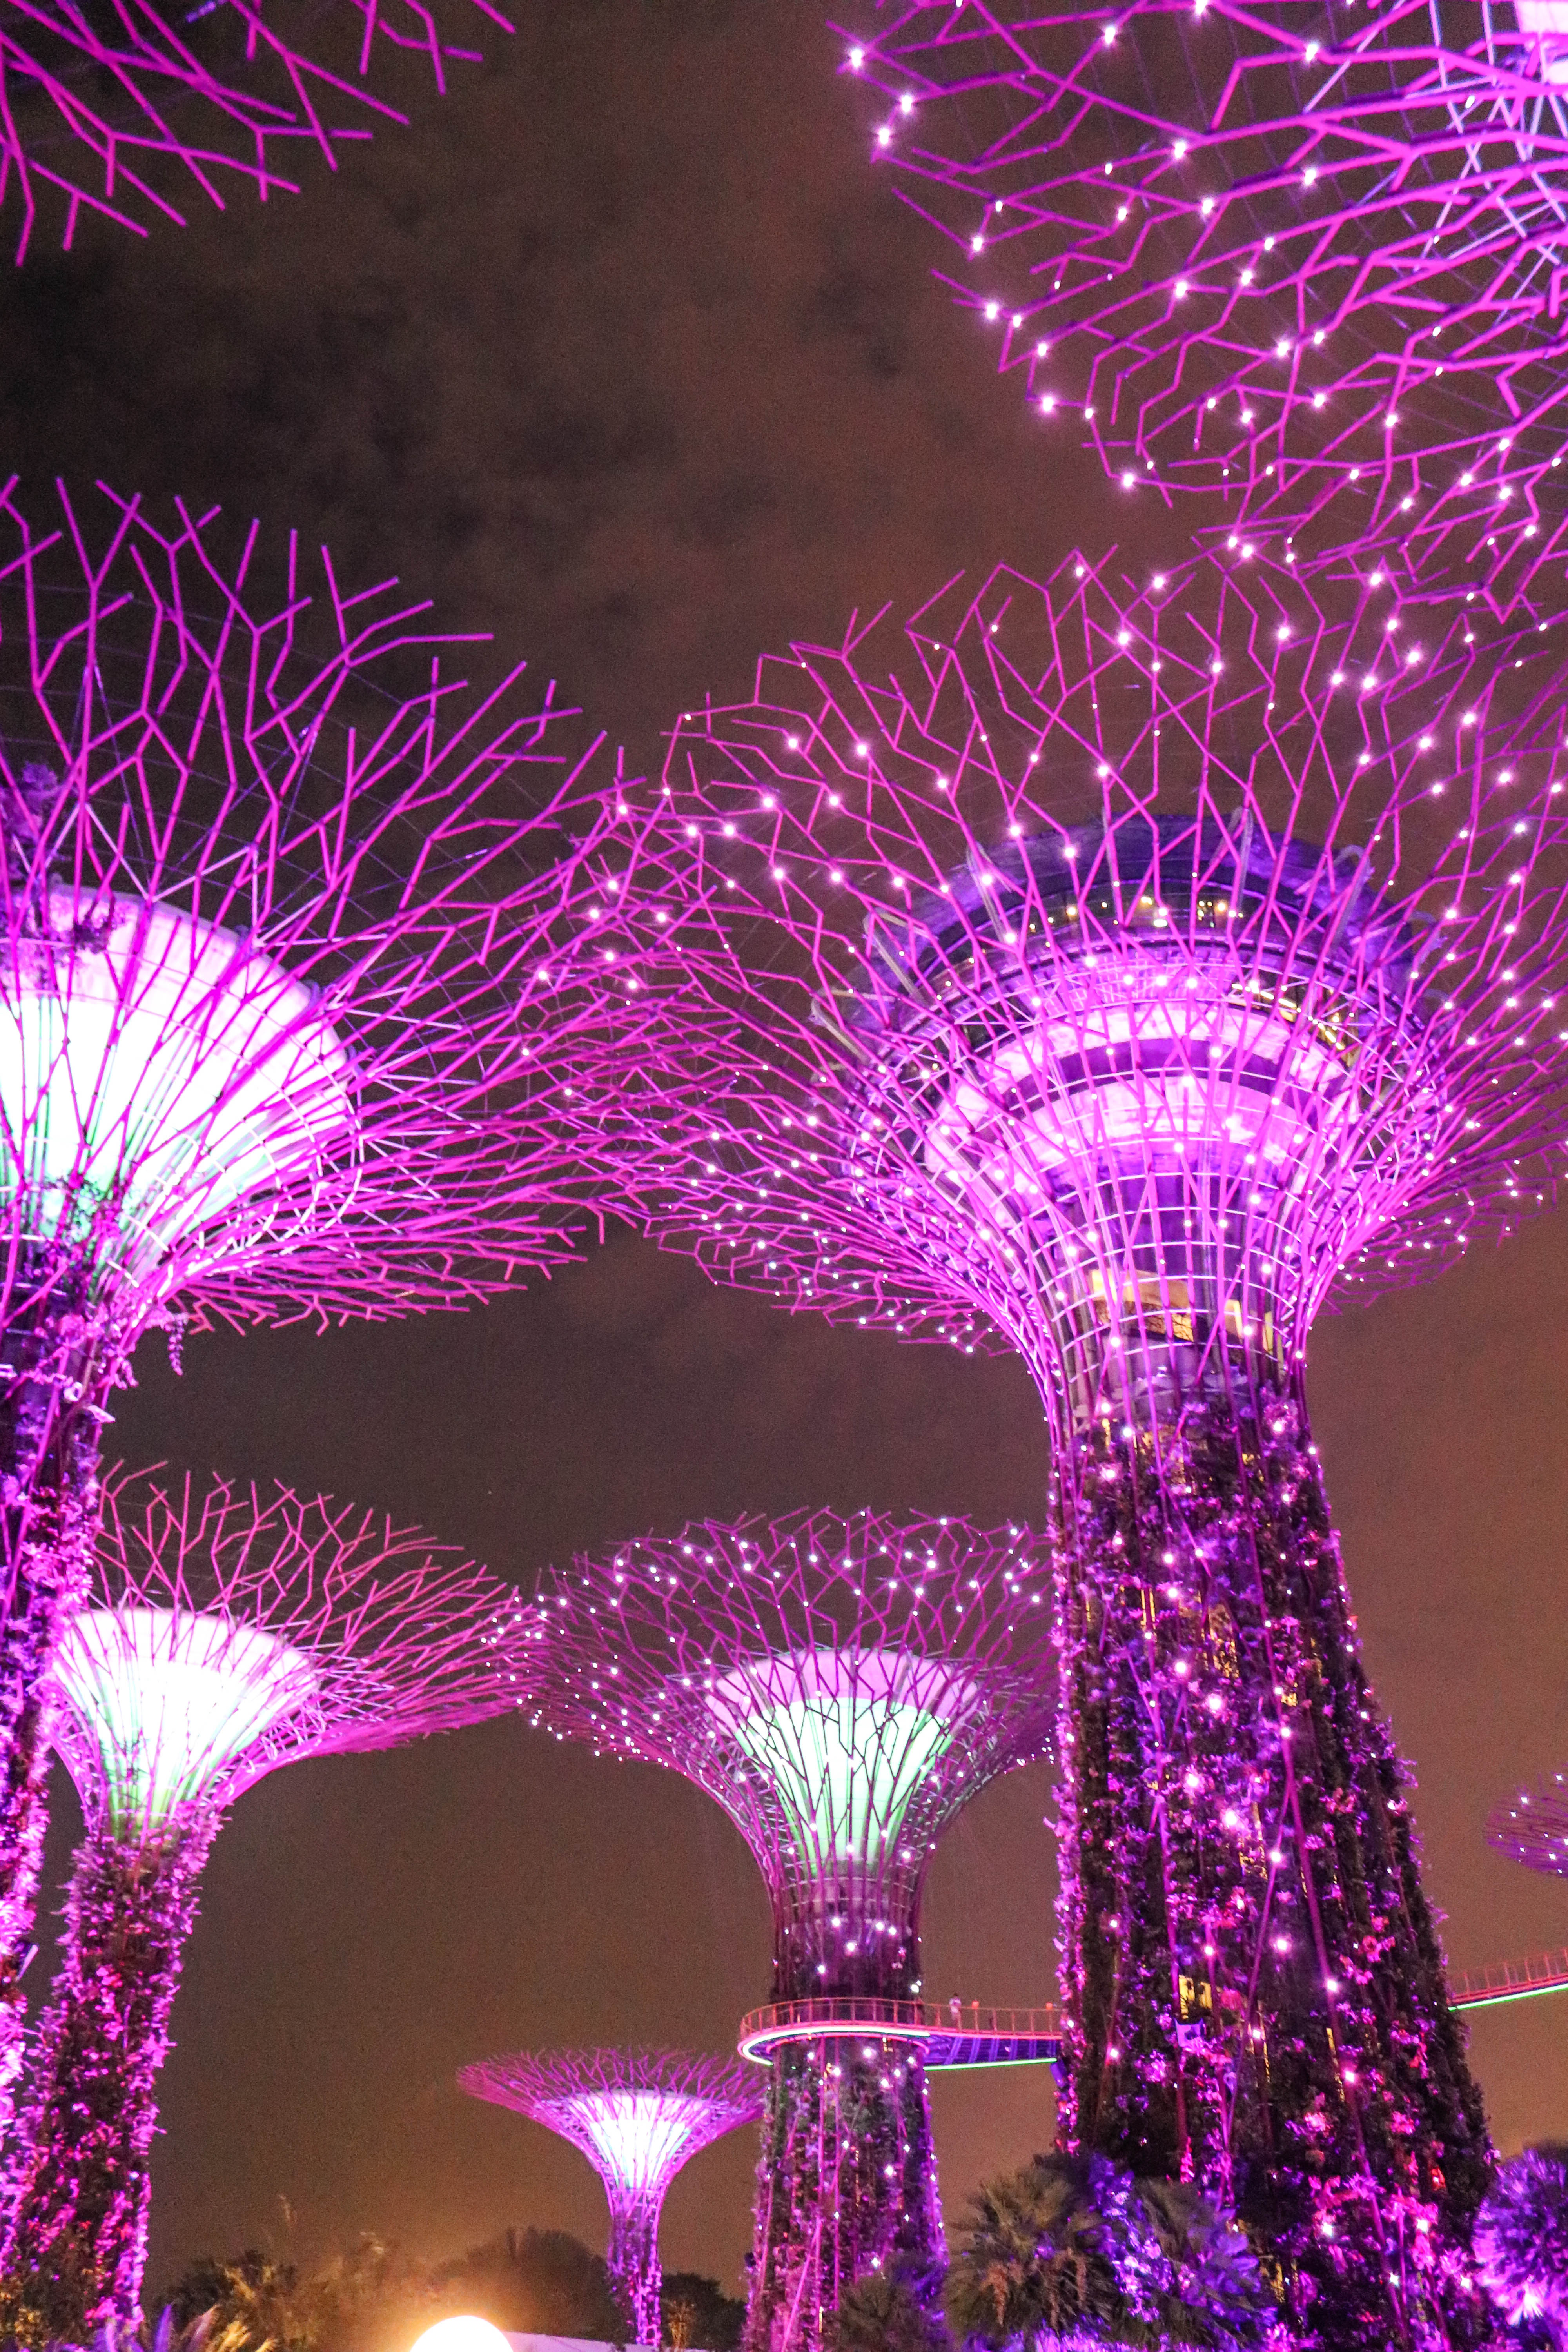 My Singapore Photo Itinerary - Codie Zofia